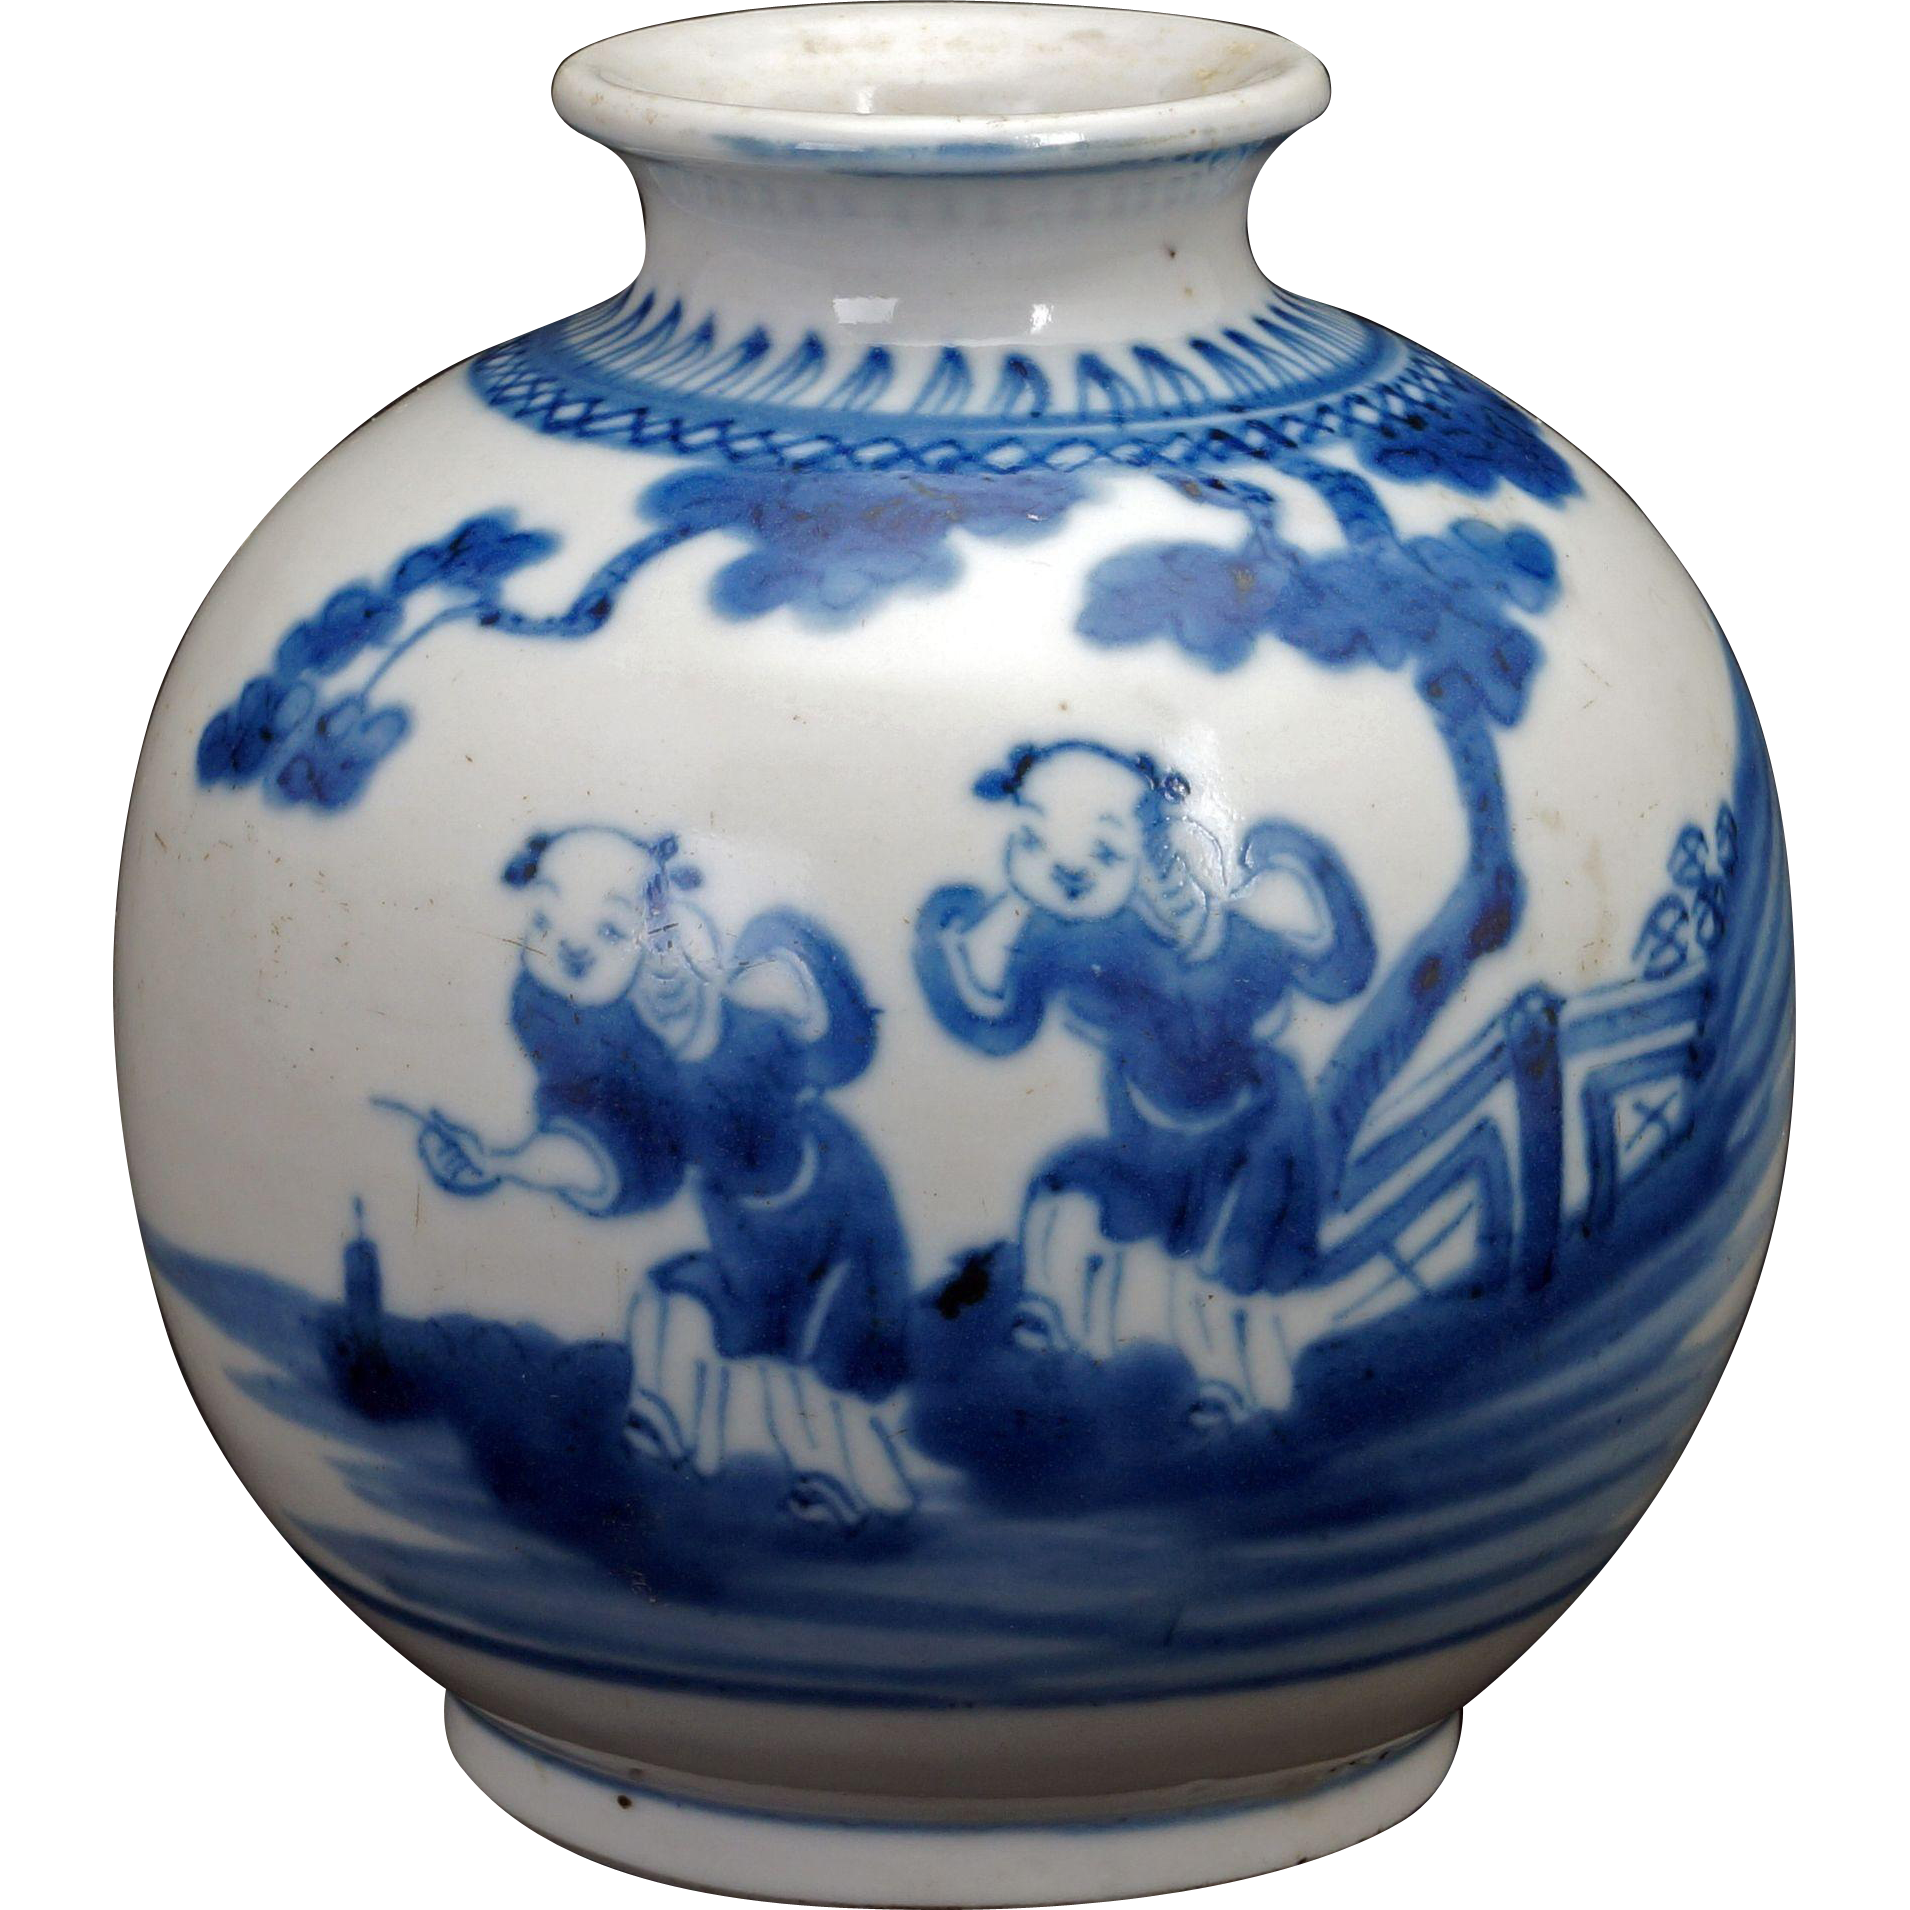 Chinese blue and white porcelain small round vase with children chinese blue and white porcelain small round vase with children 19th century reviewsmspy